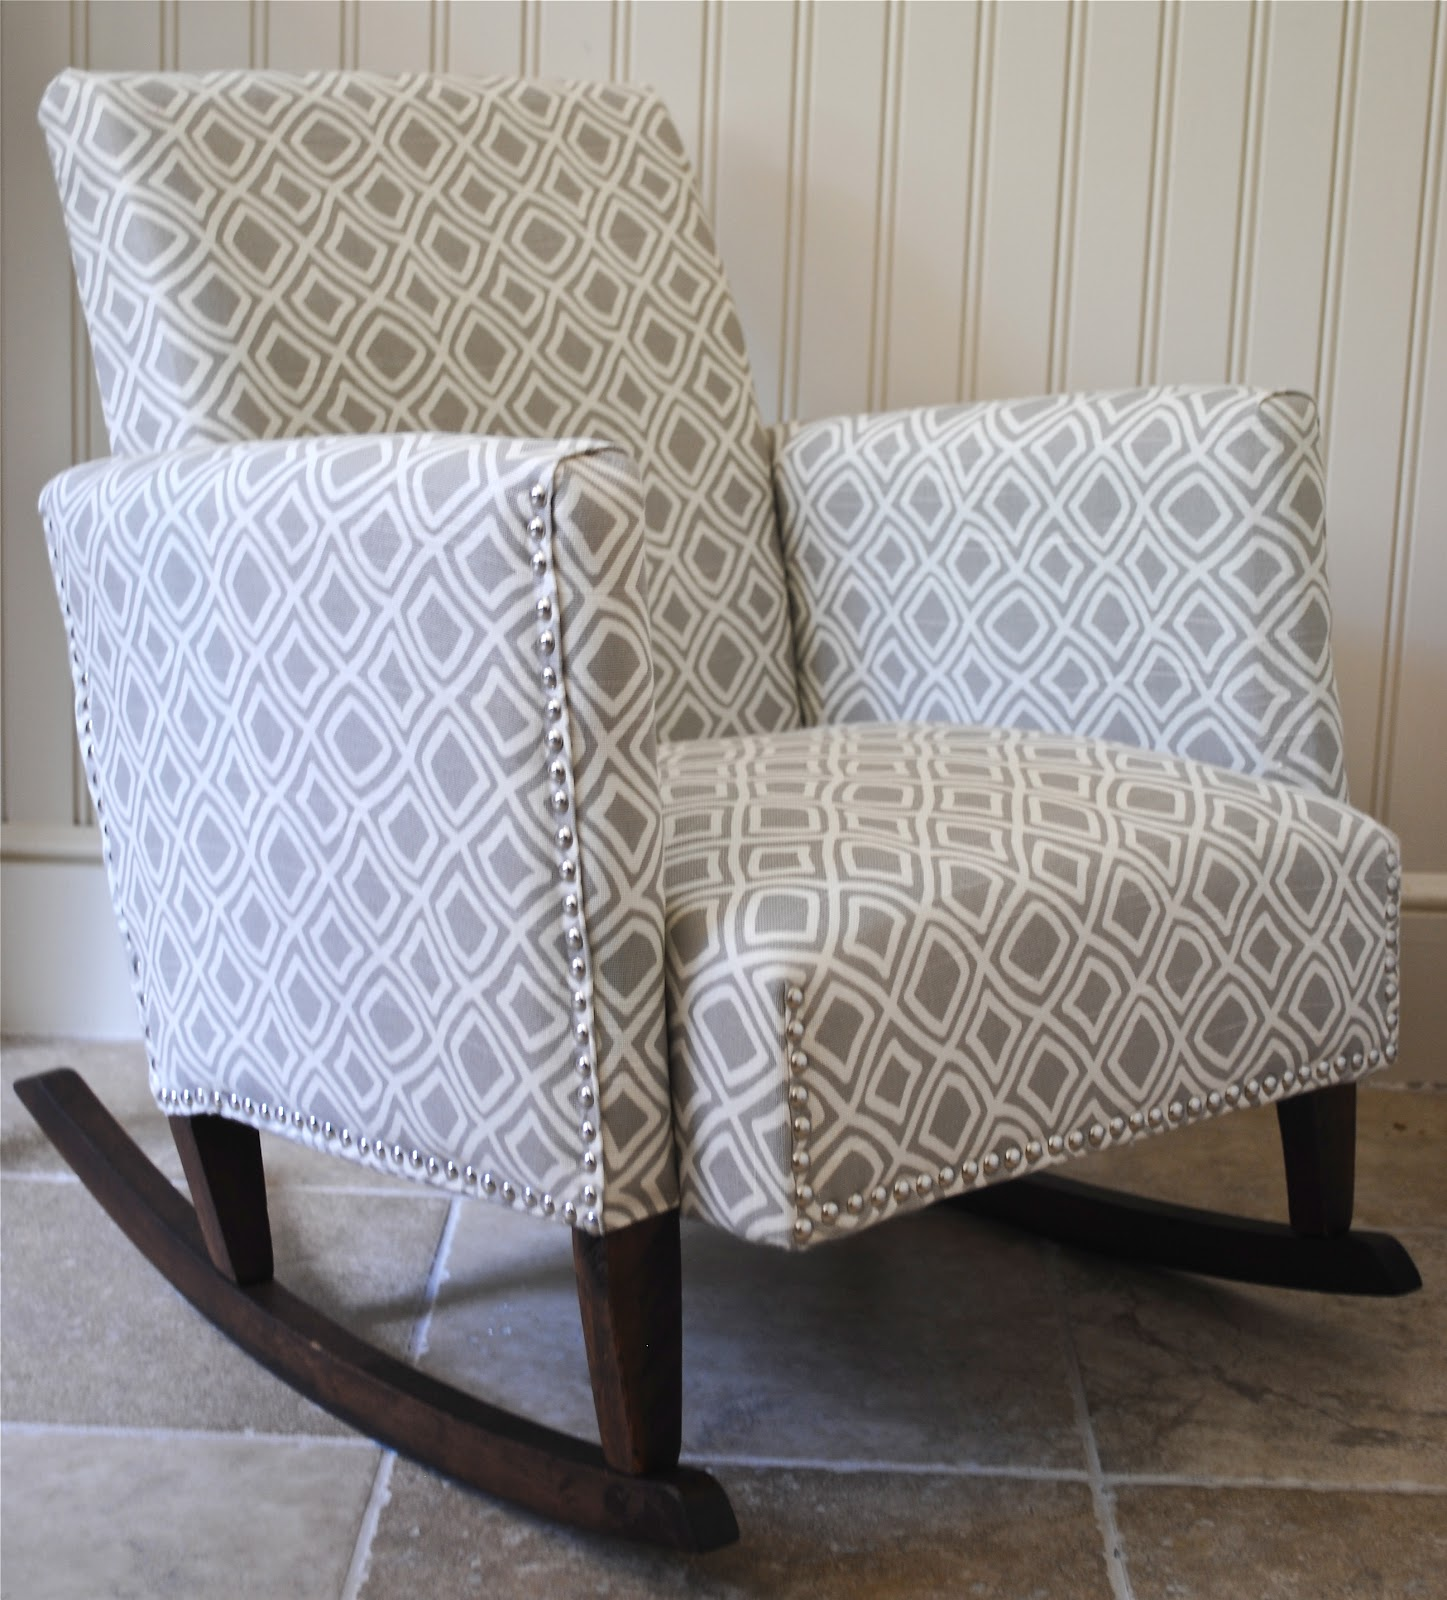 DIYish Upholstered Childs Rocking Chair  The